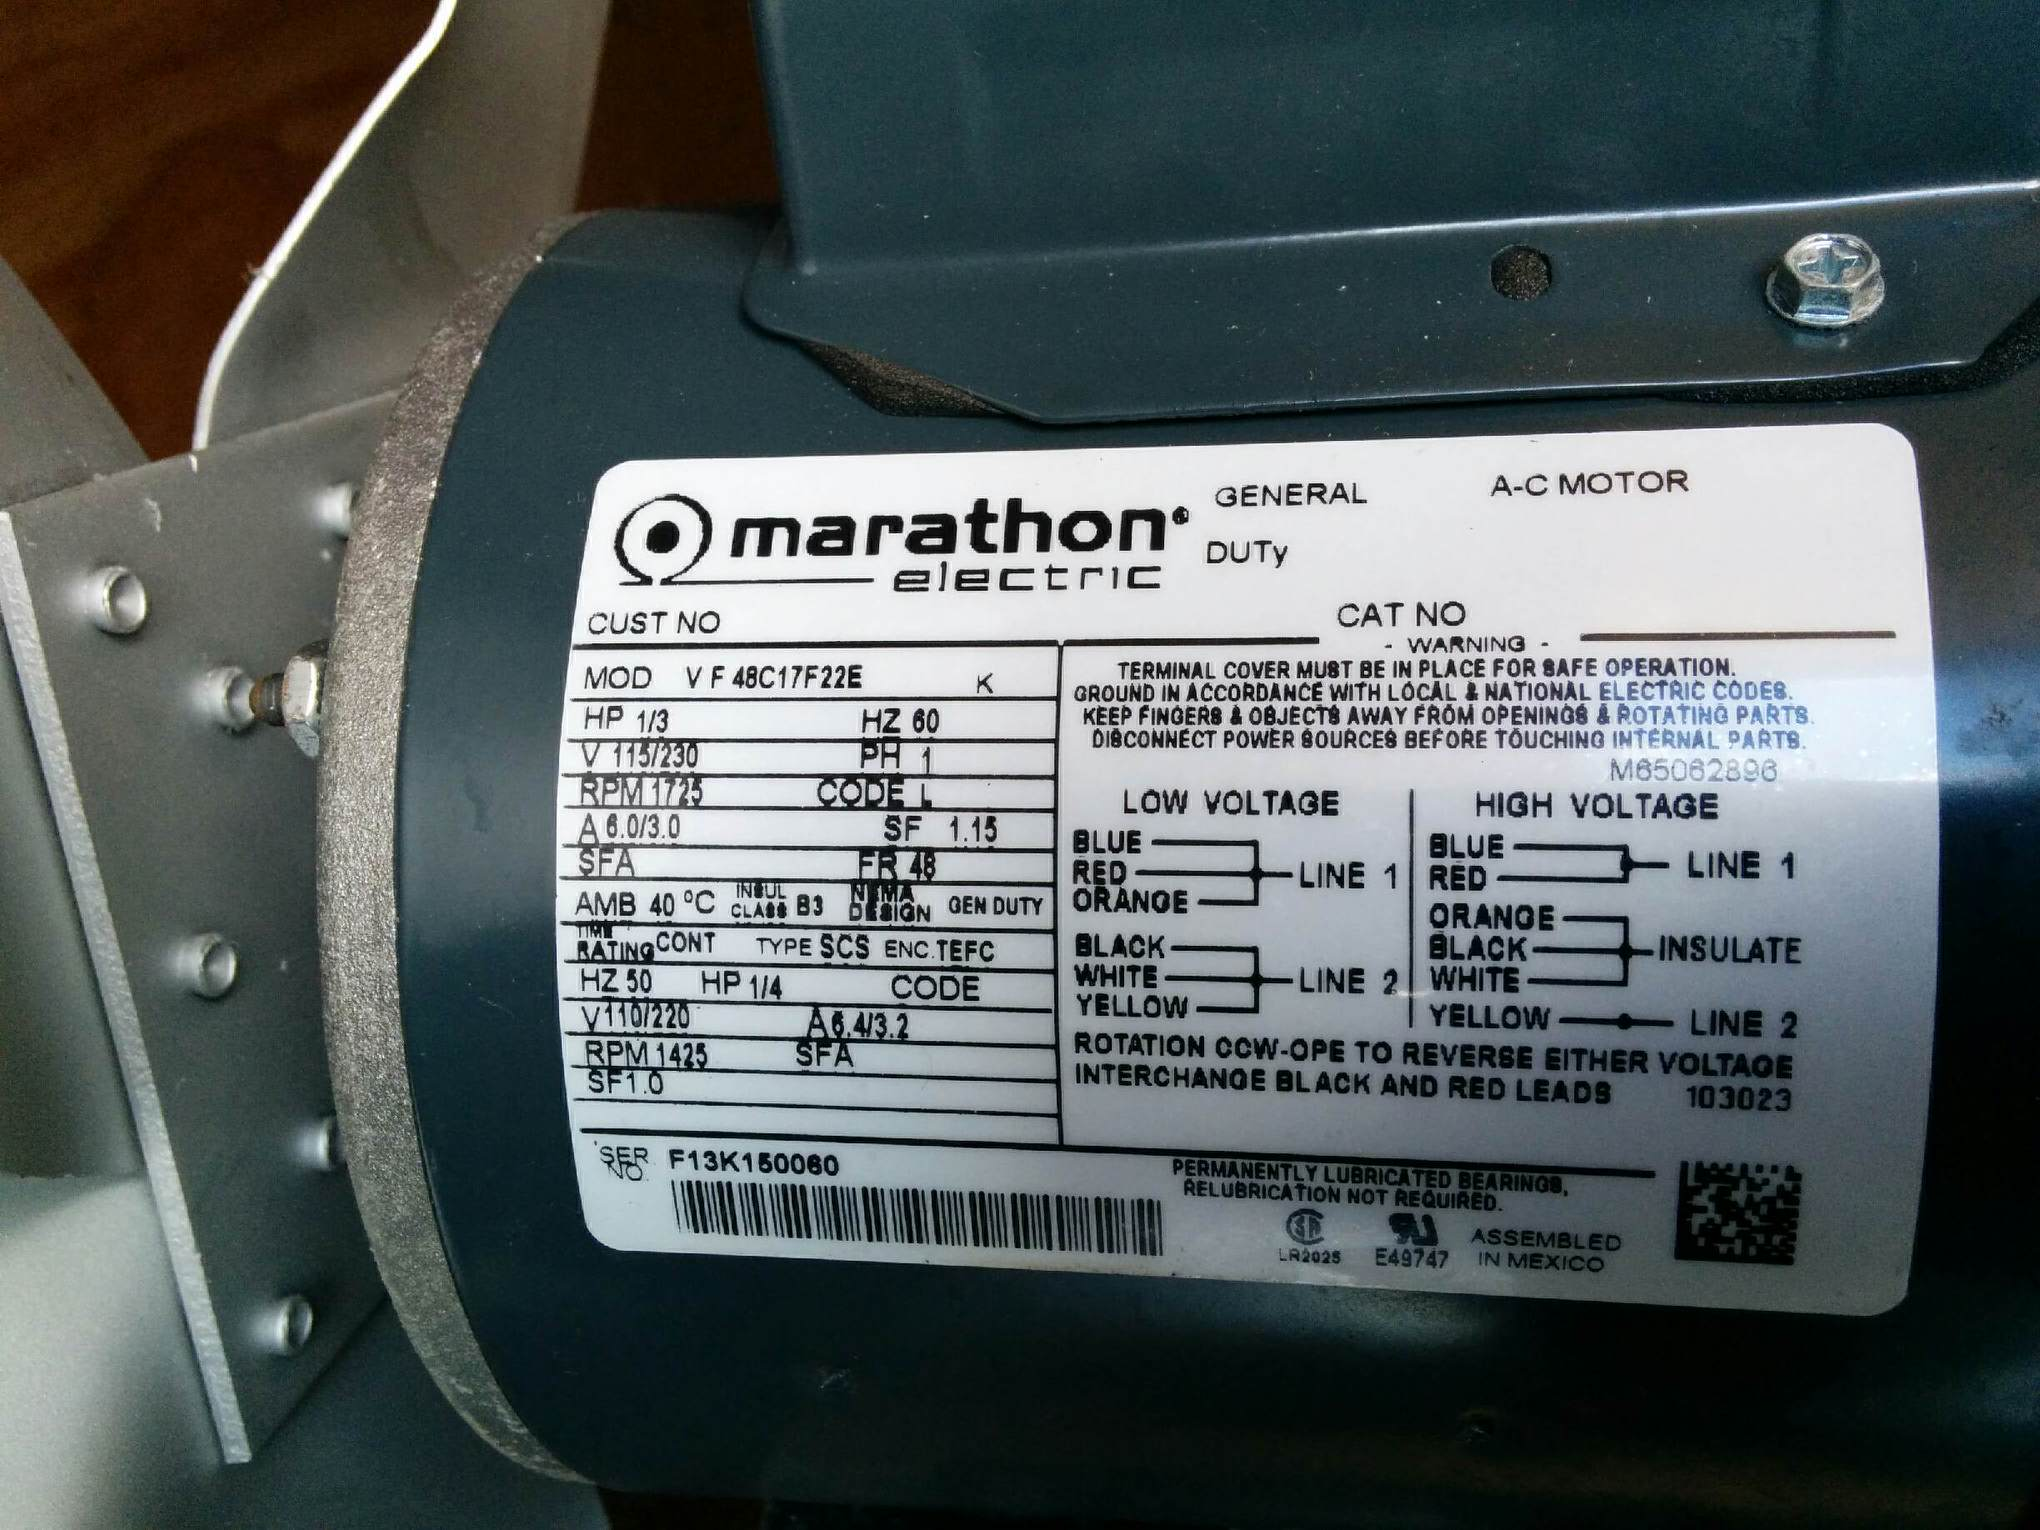 i a marathon electric motor 1 3 hp im trying to understand